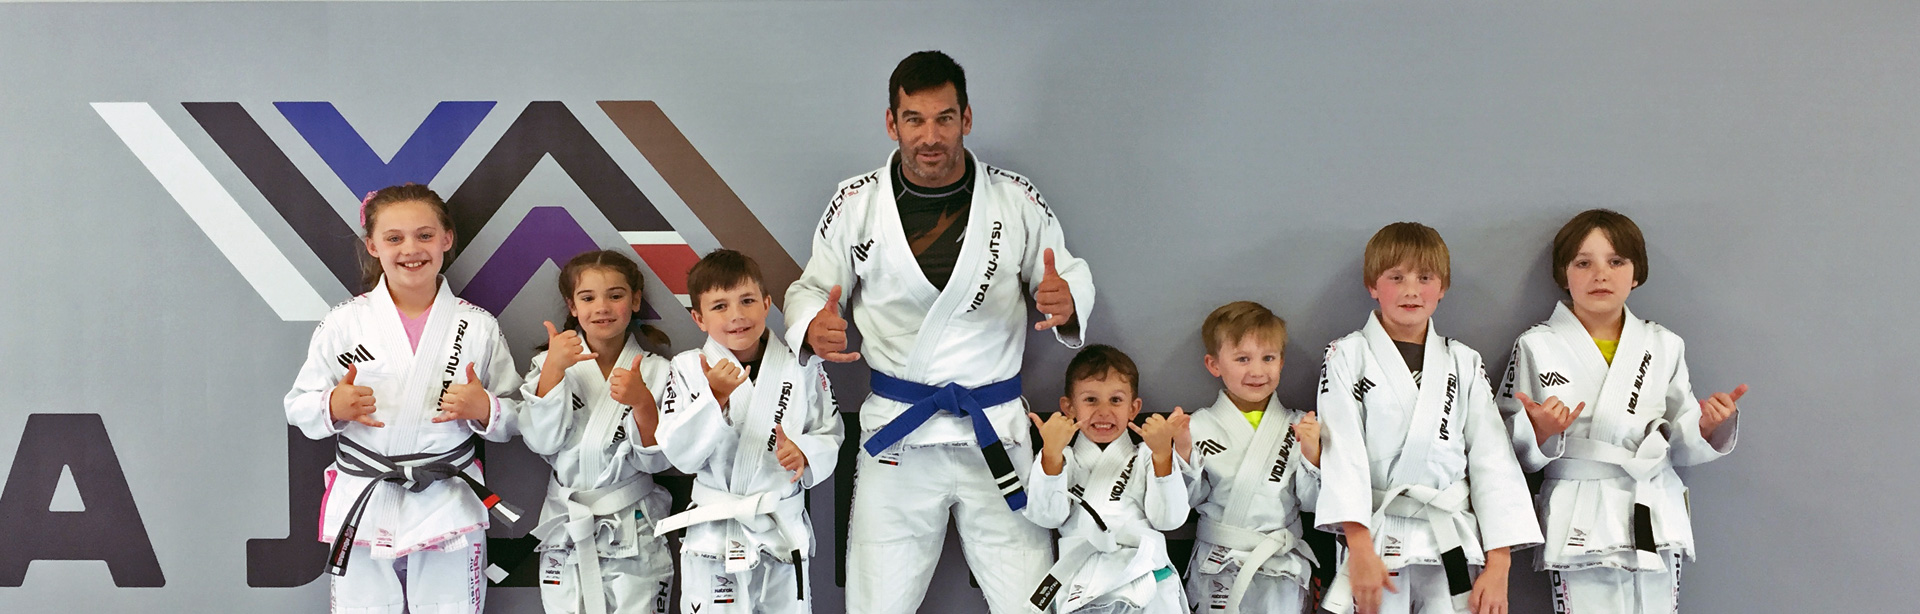 Vida Brazilian Jiu-jitsu Frequently Asked Questions